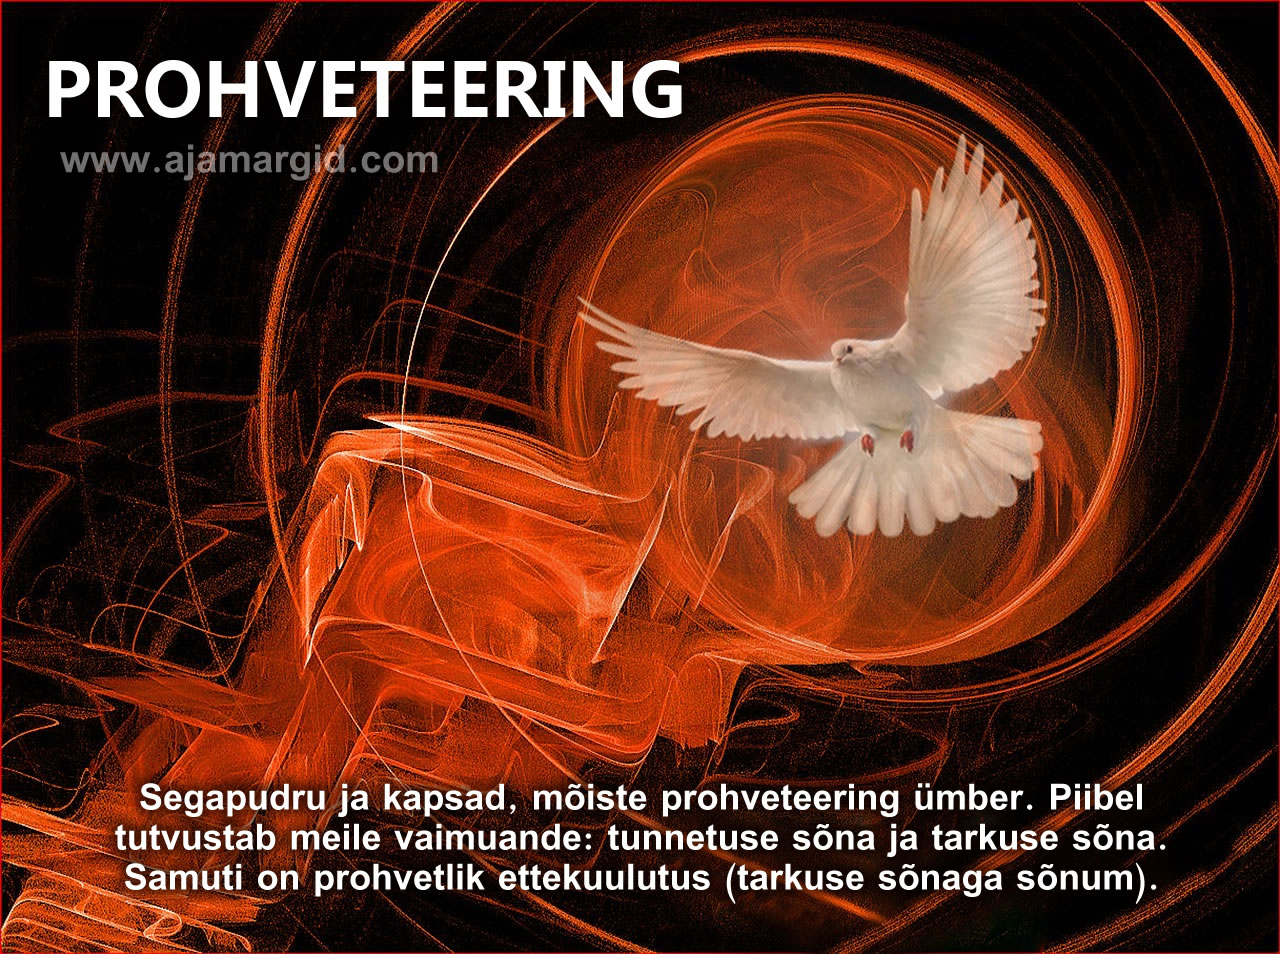 prohveteering-mis-see-on